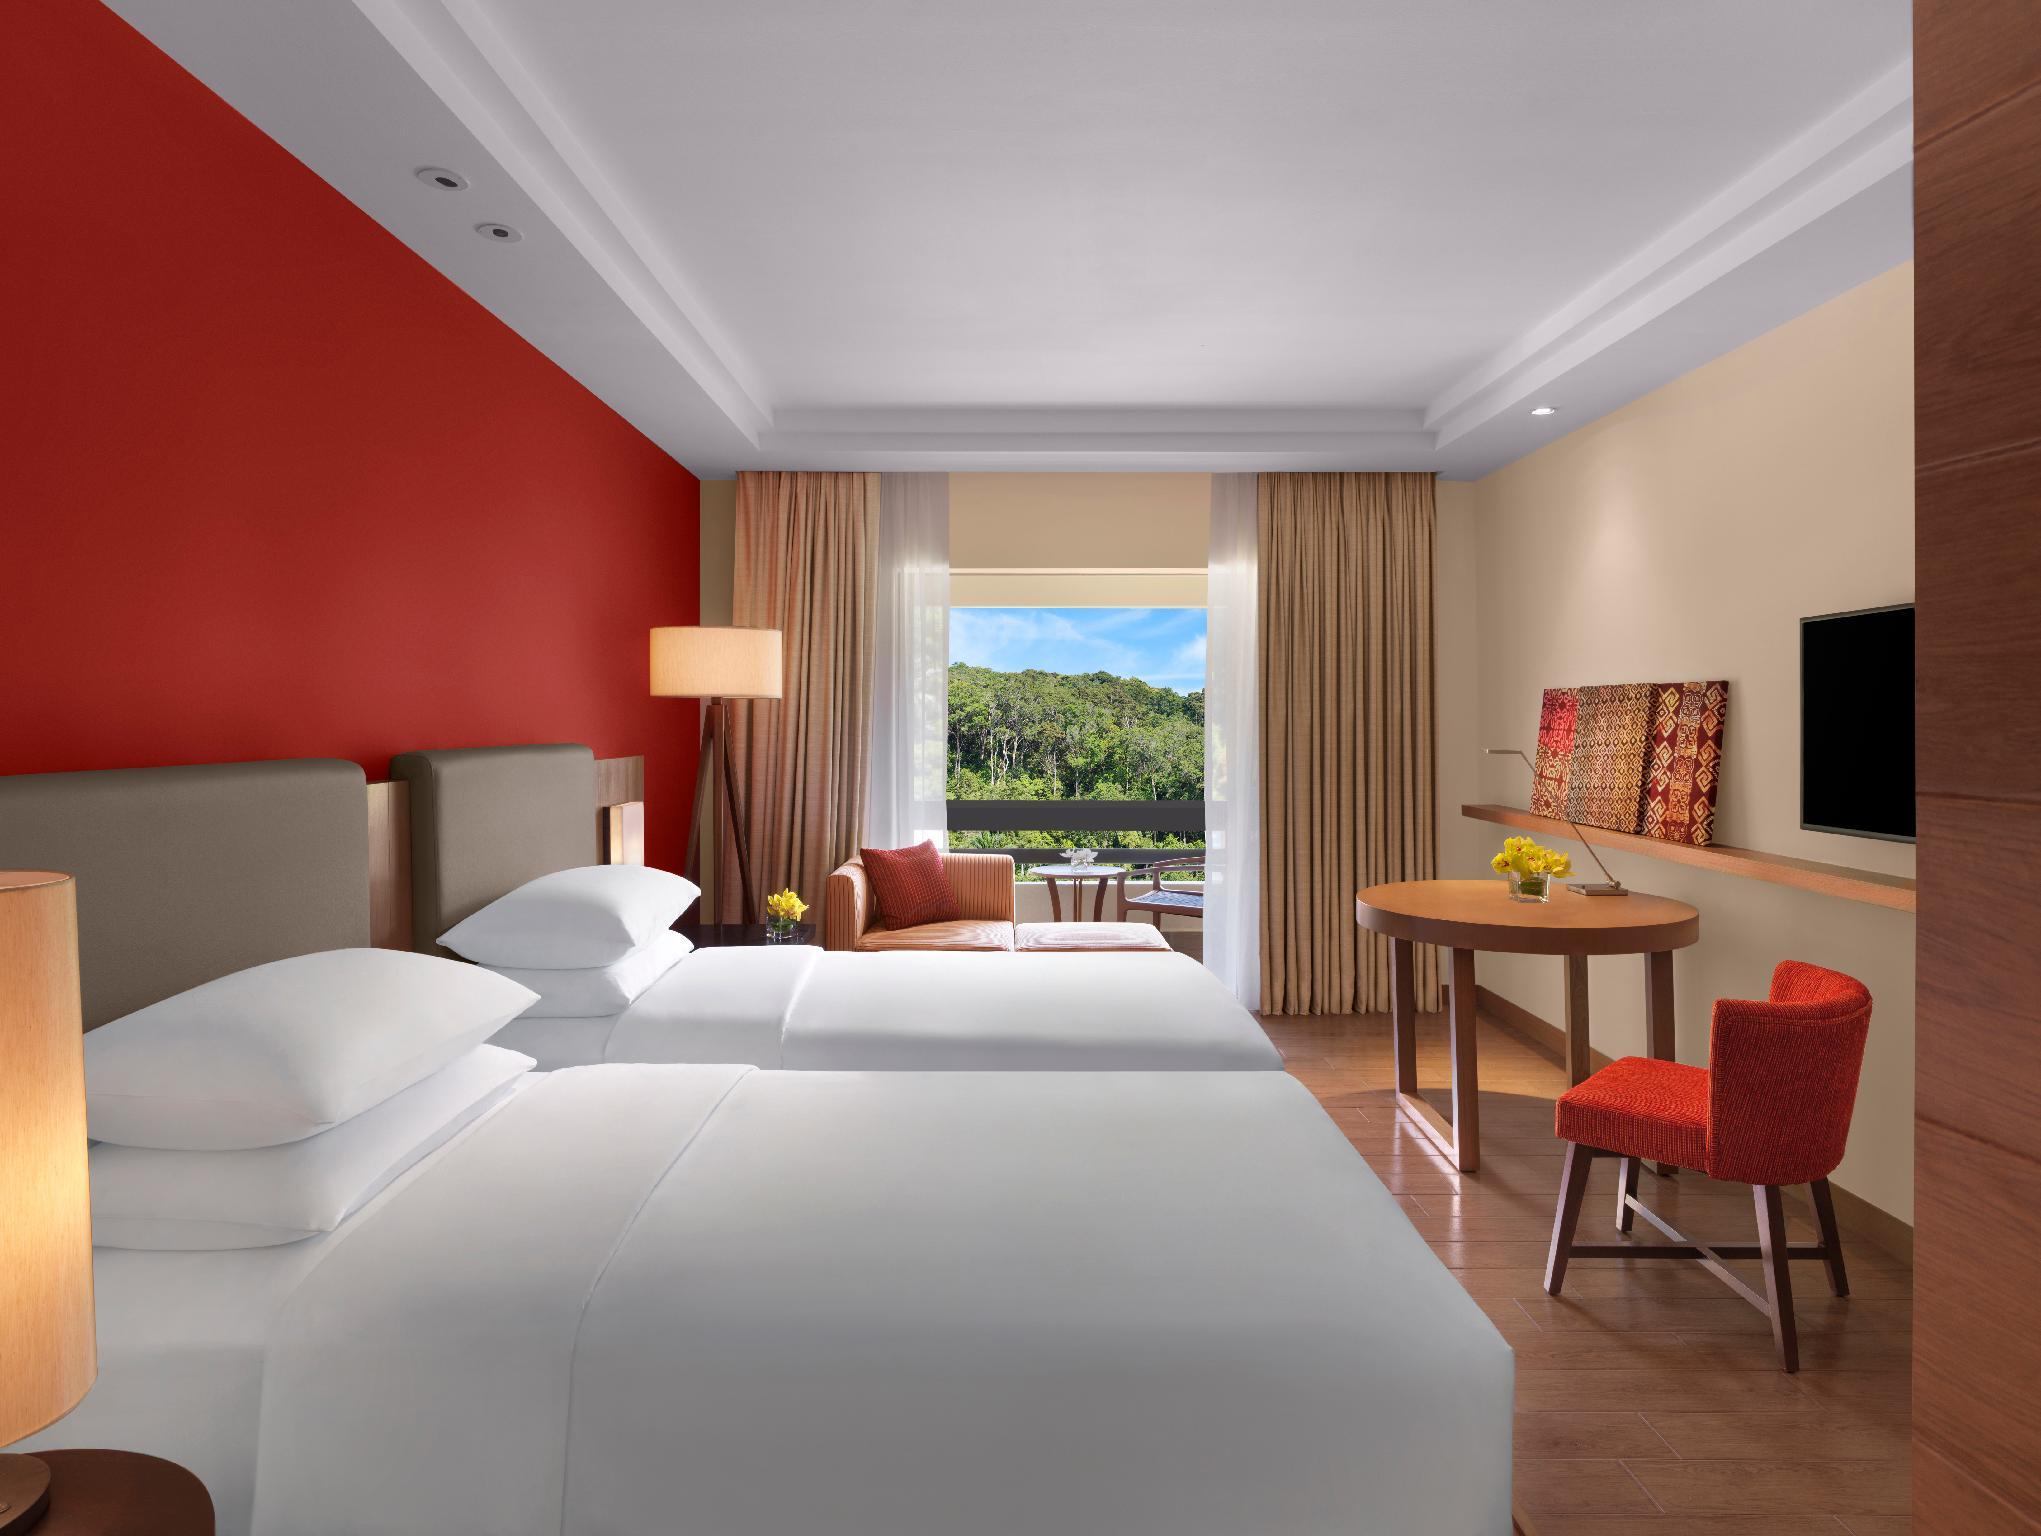 Suite Regency Eksekutif (Regency Executive Suite)